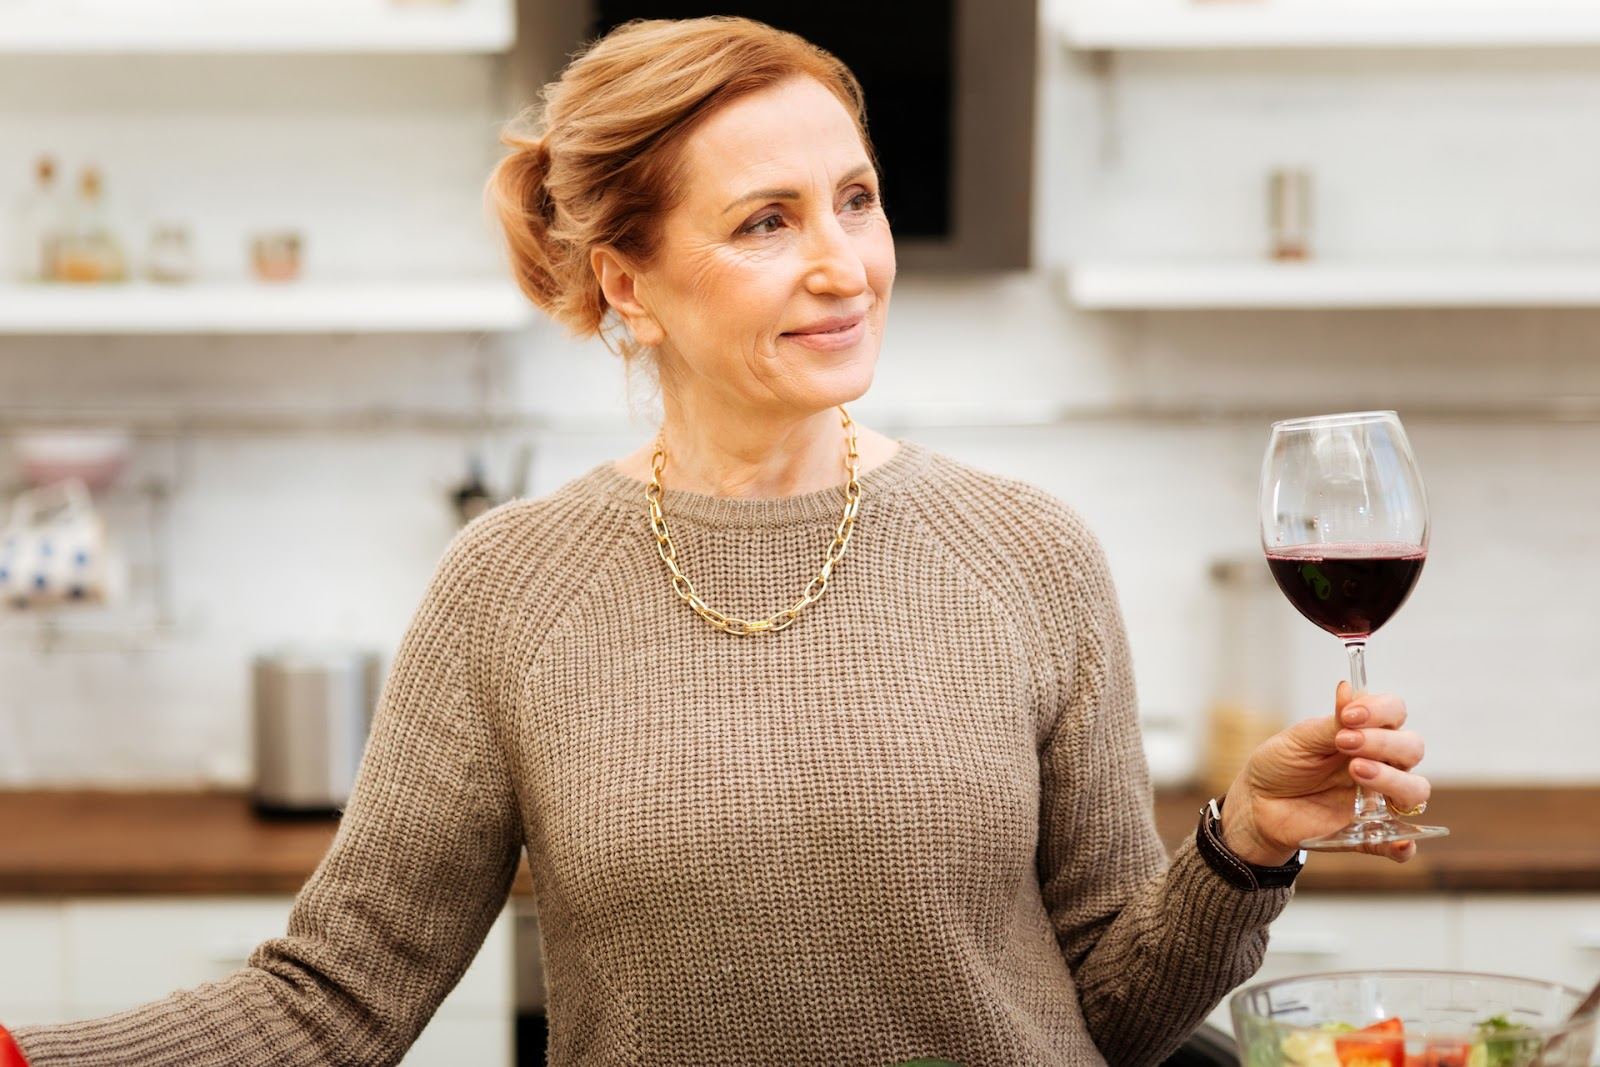 Woman drinking a glass of wine in her kitchen